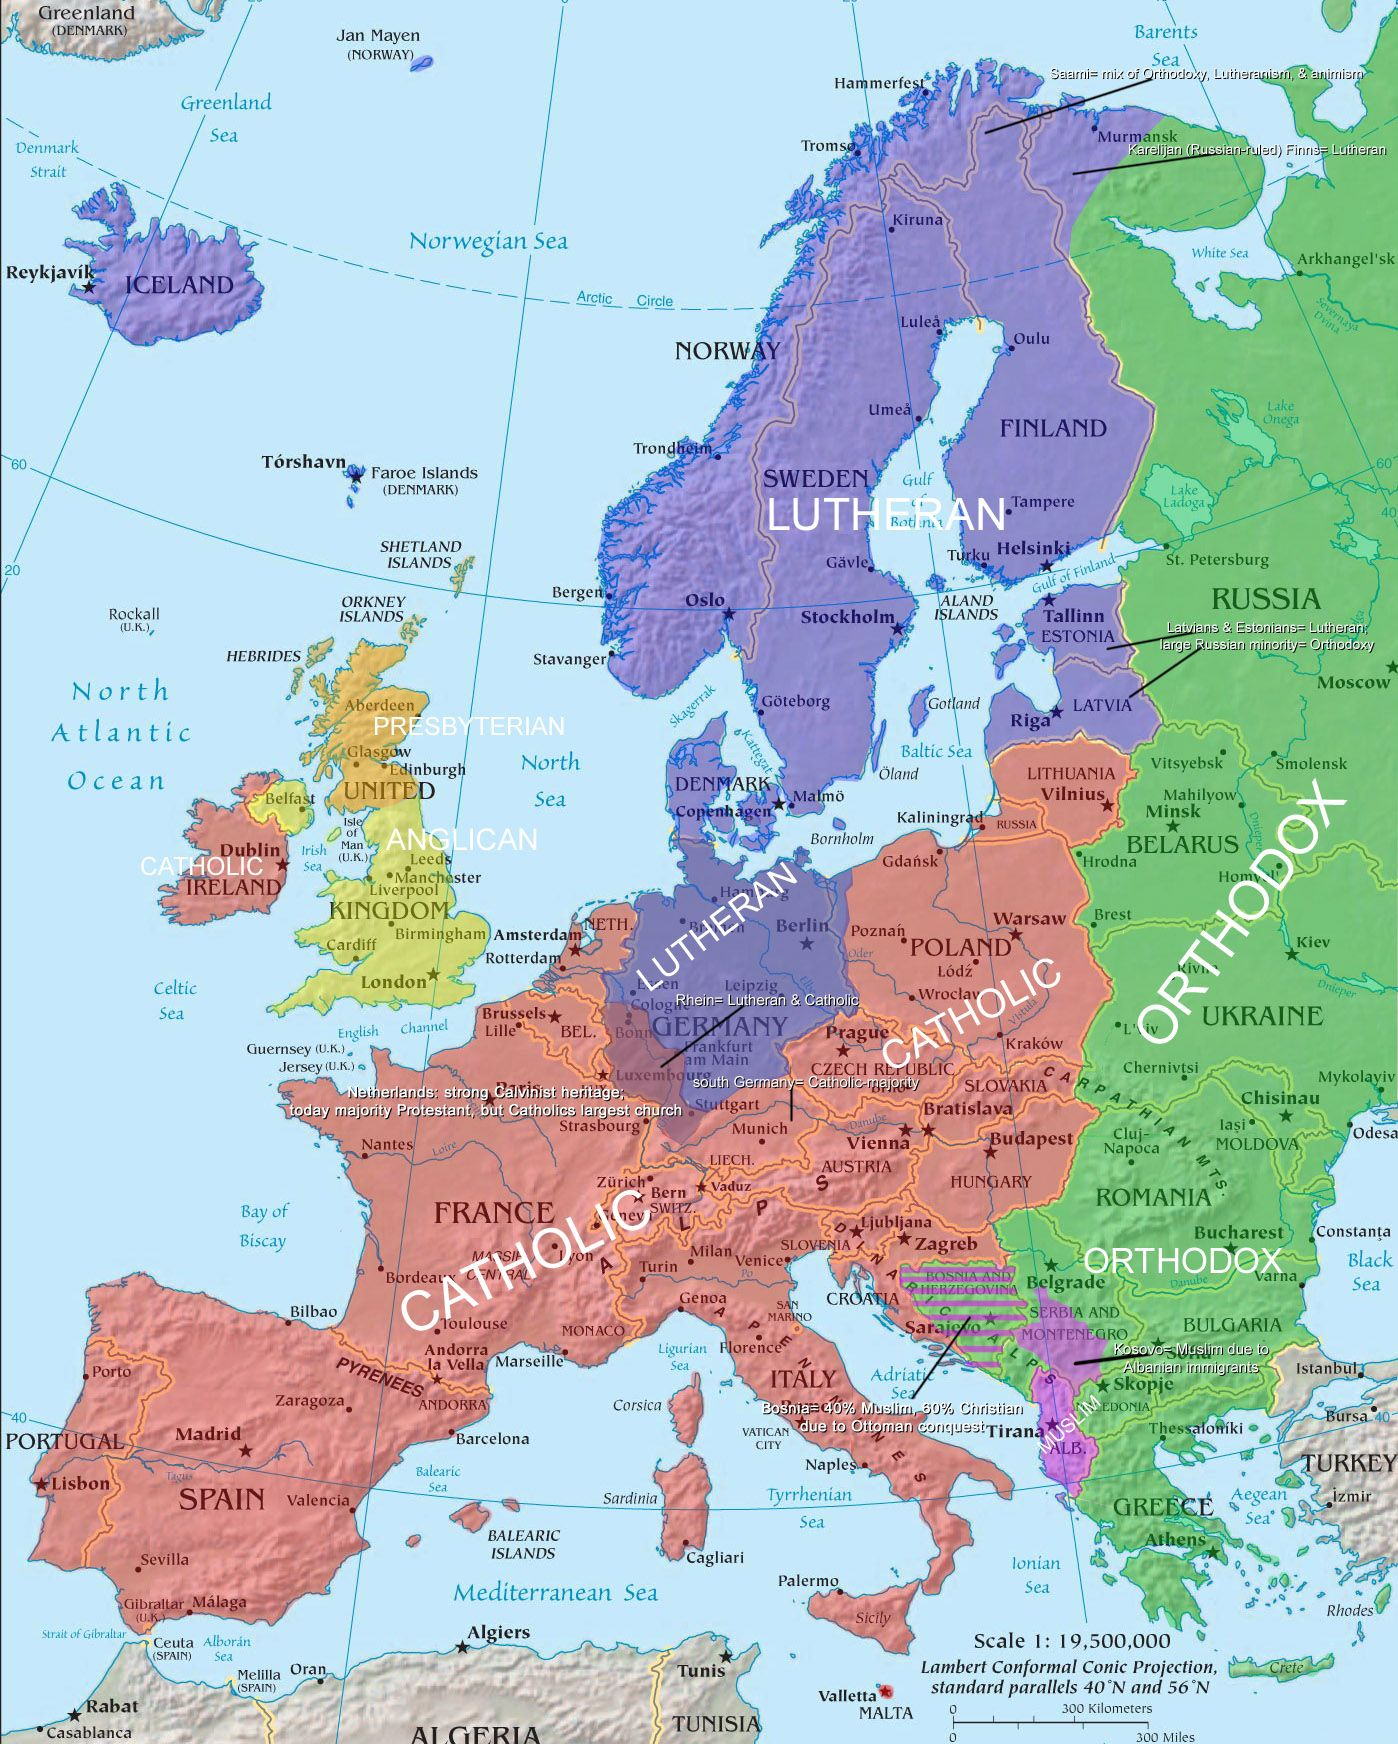 European Religions From Www One Europe Info Direct Link To Detailed Image